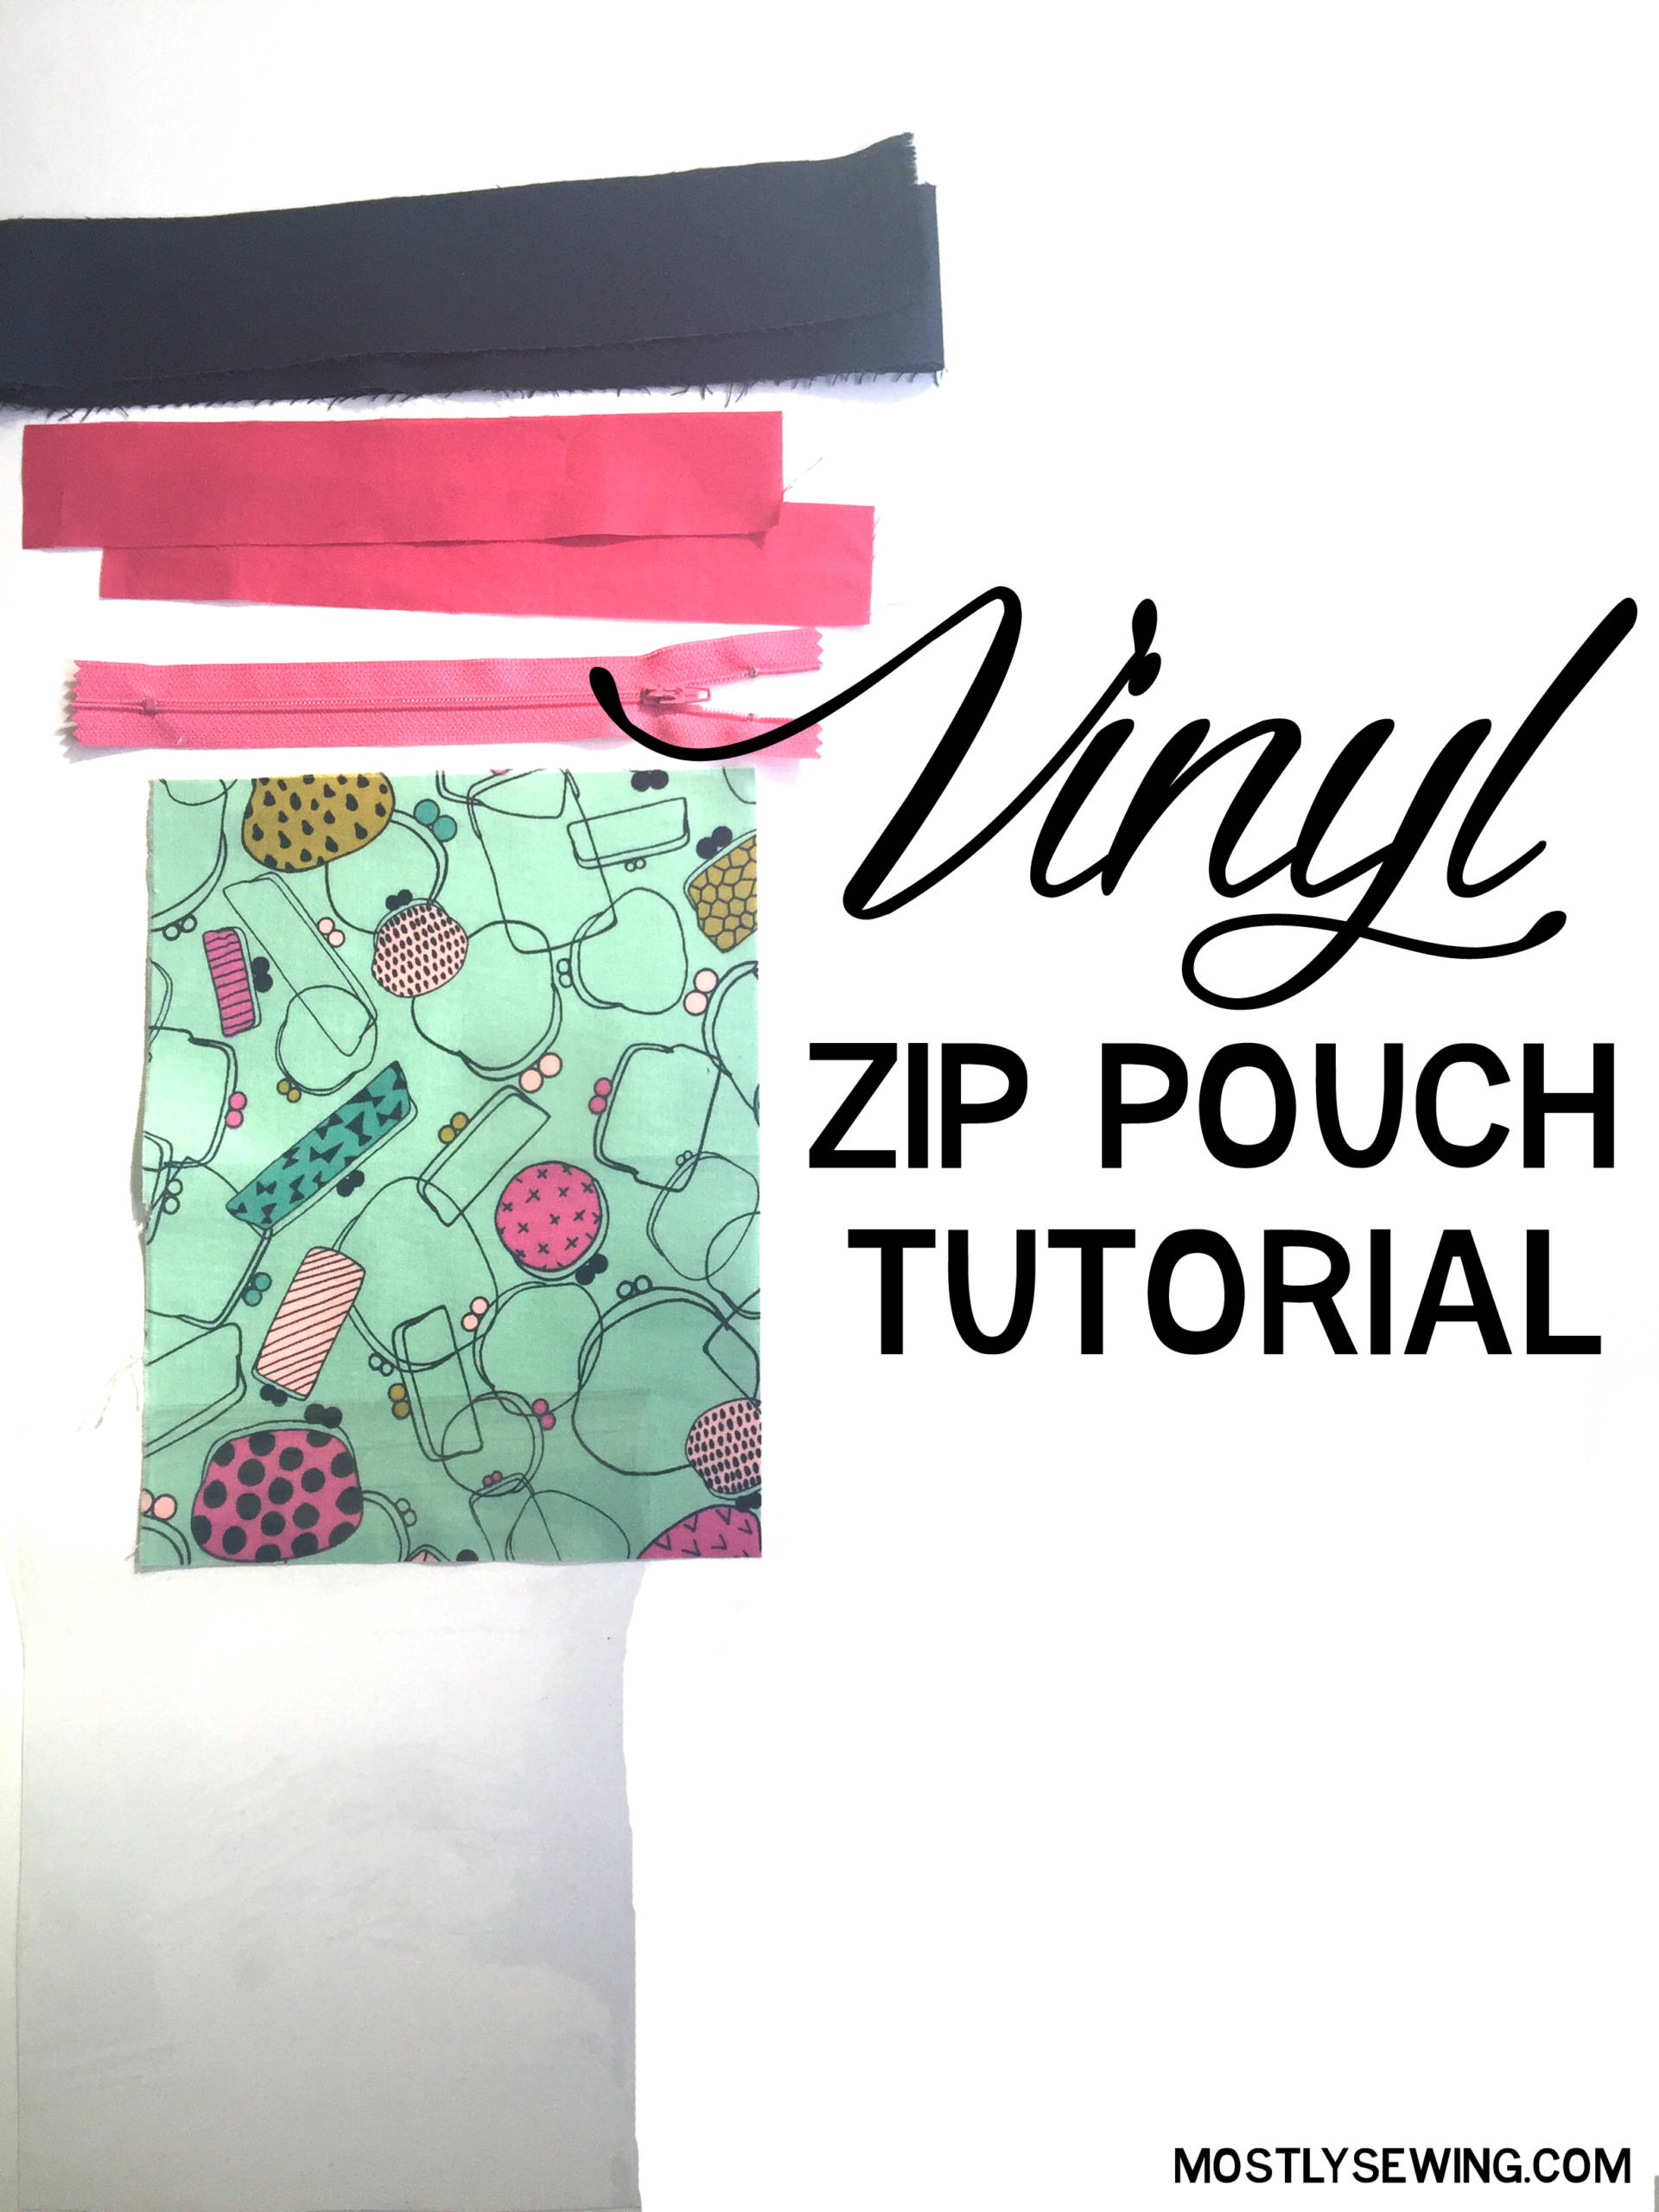 I used cotton and steel backing to sewing this fun vinyl zip pouch with a clear front!